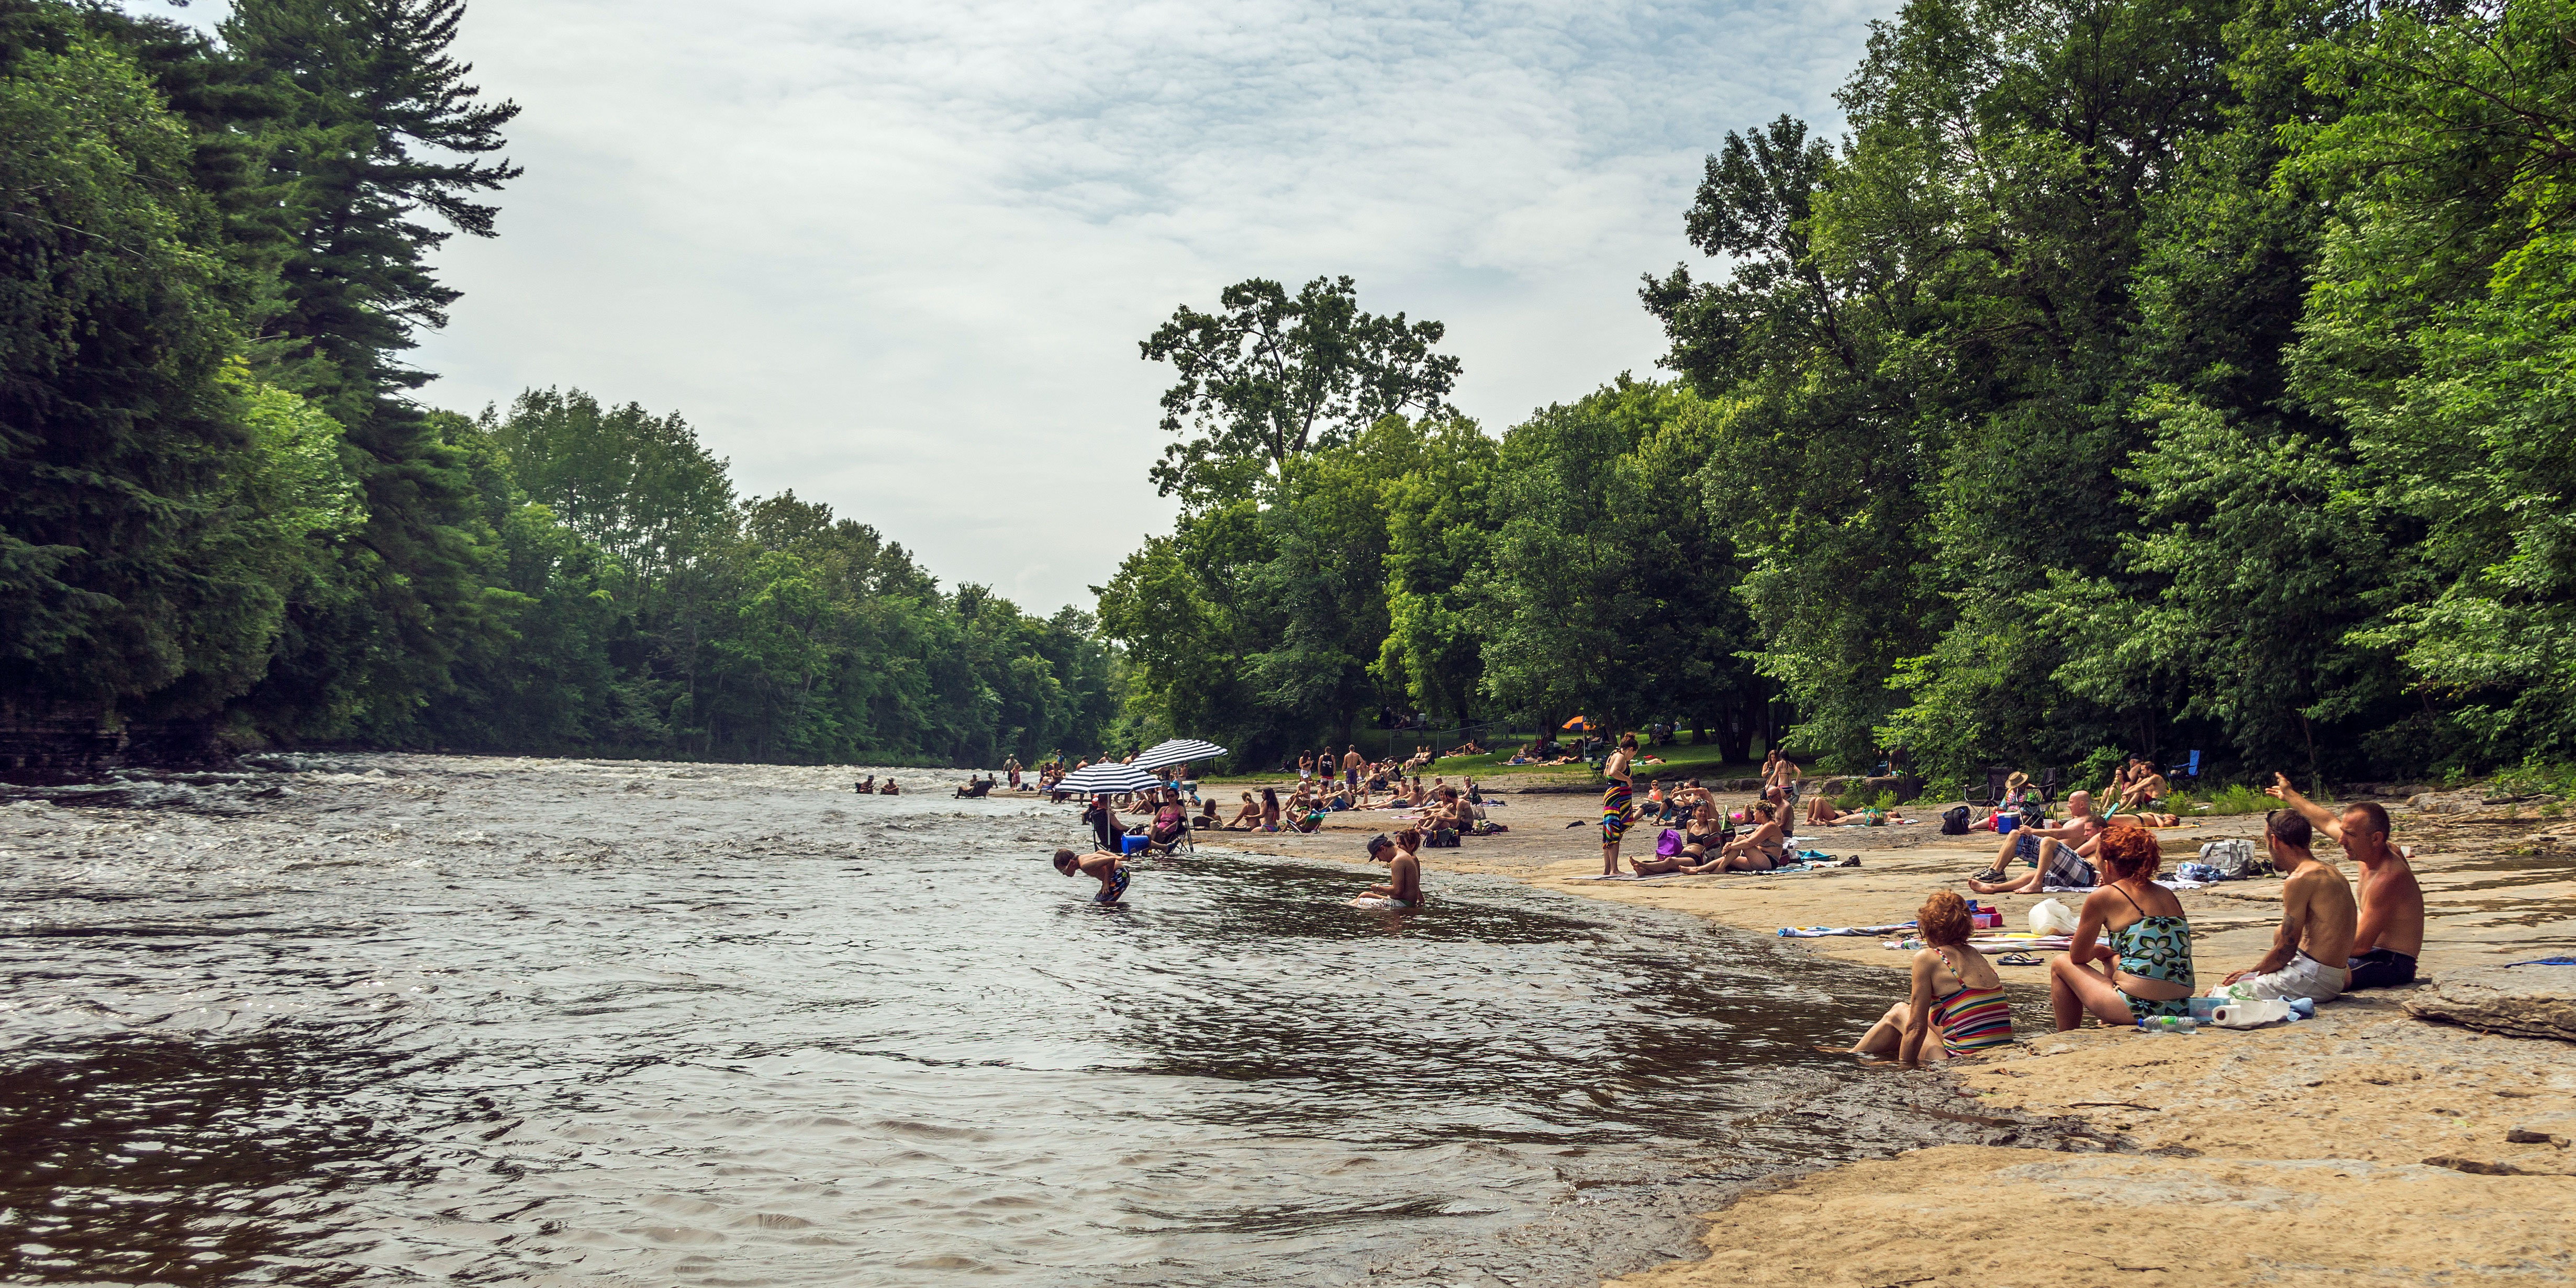 swimmers along the river